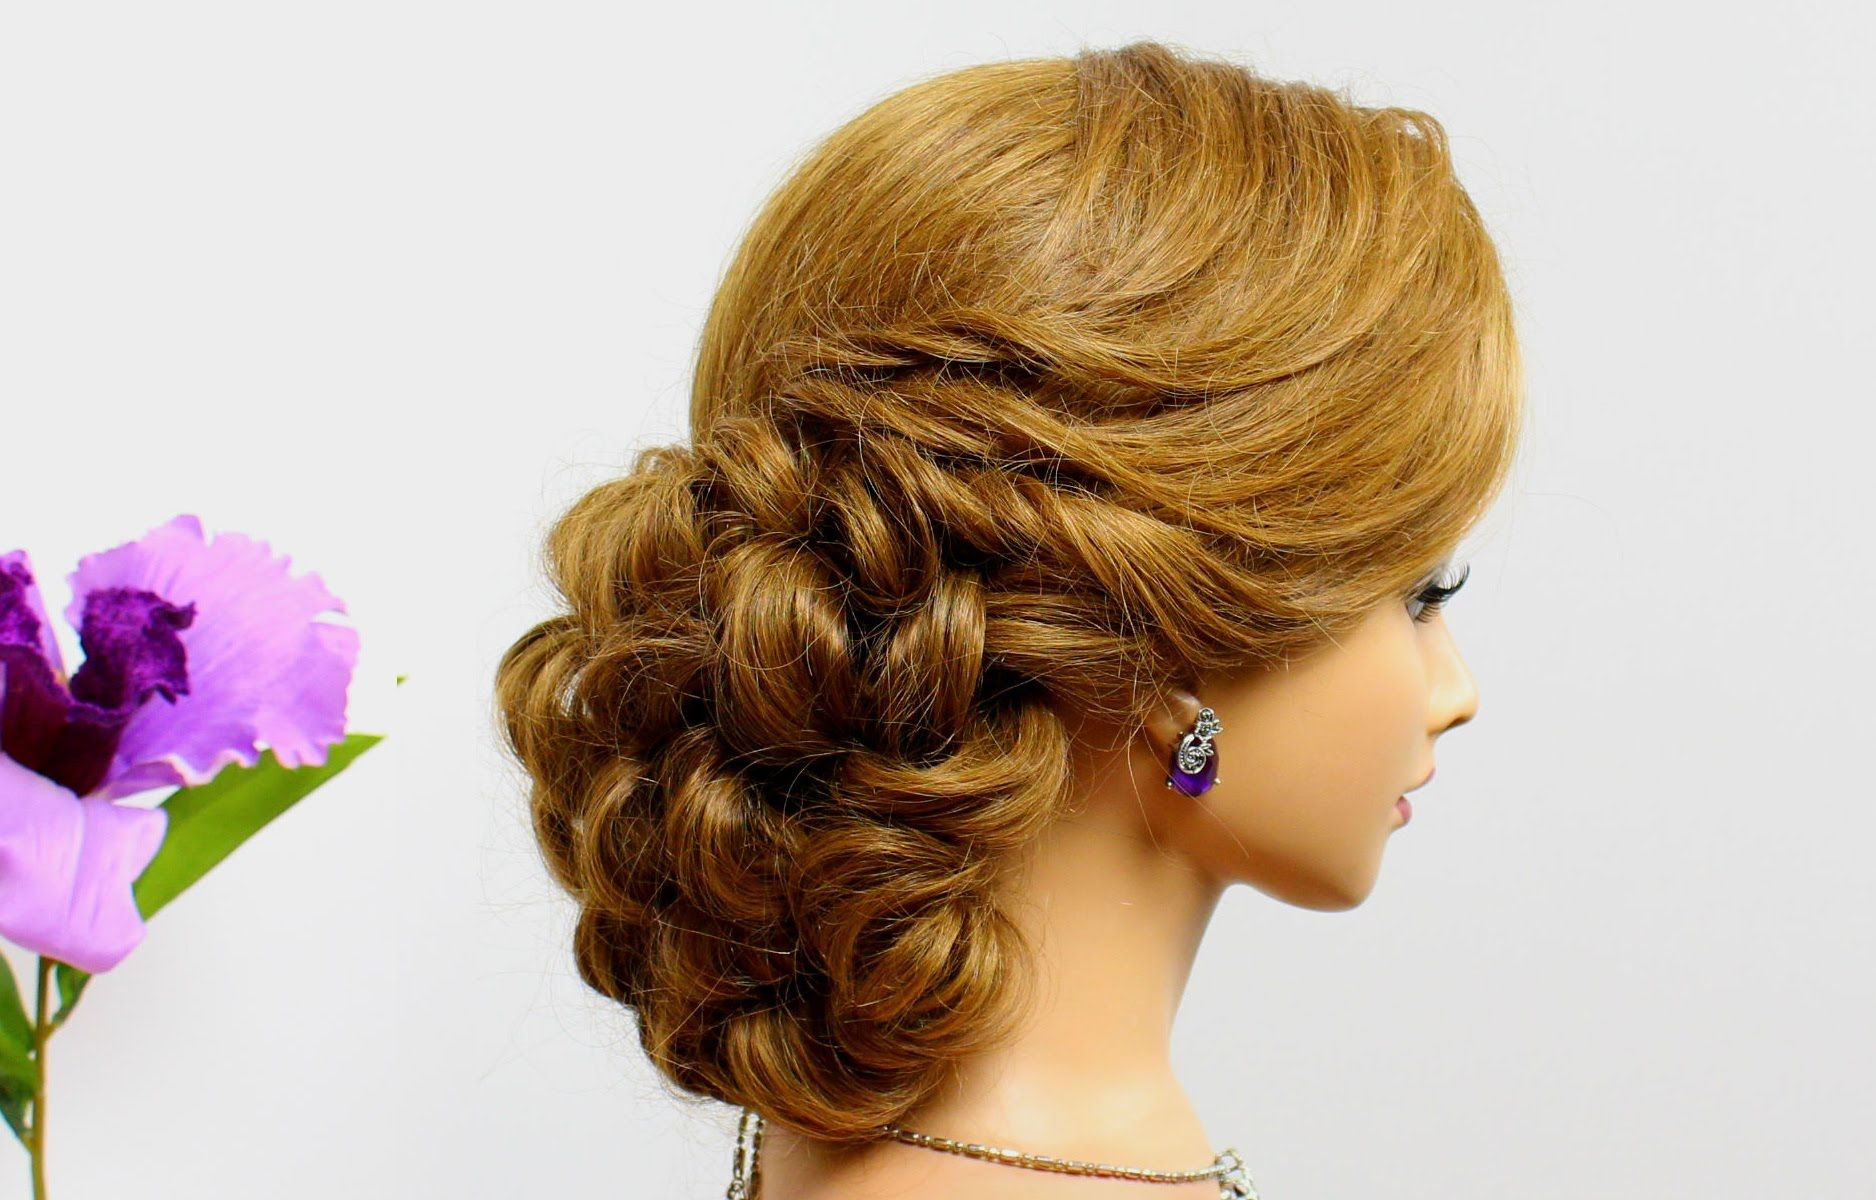 updo hairstyles. wedding prom hairstyles for long hair